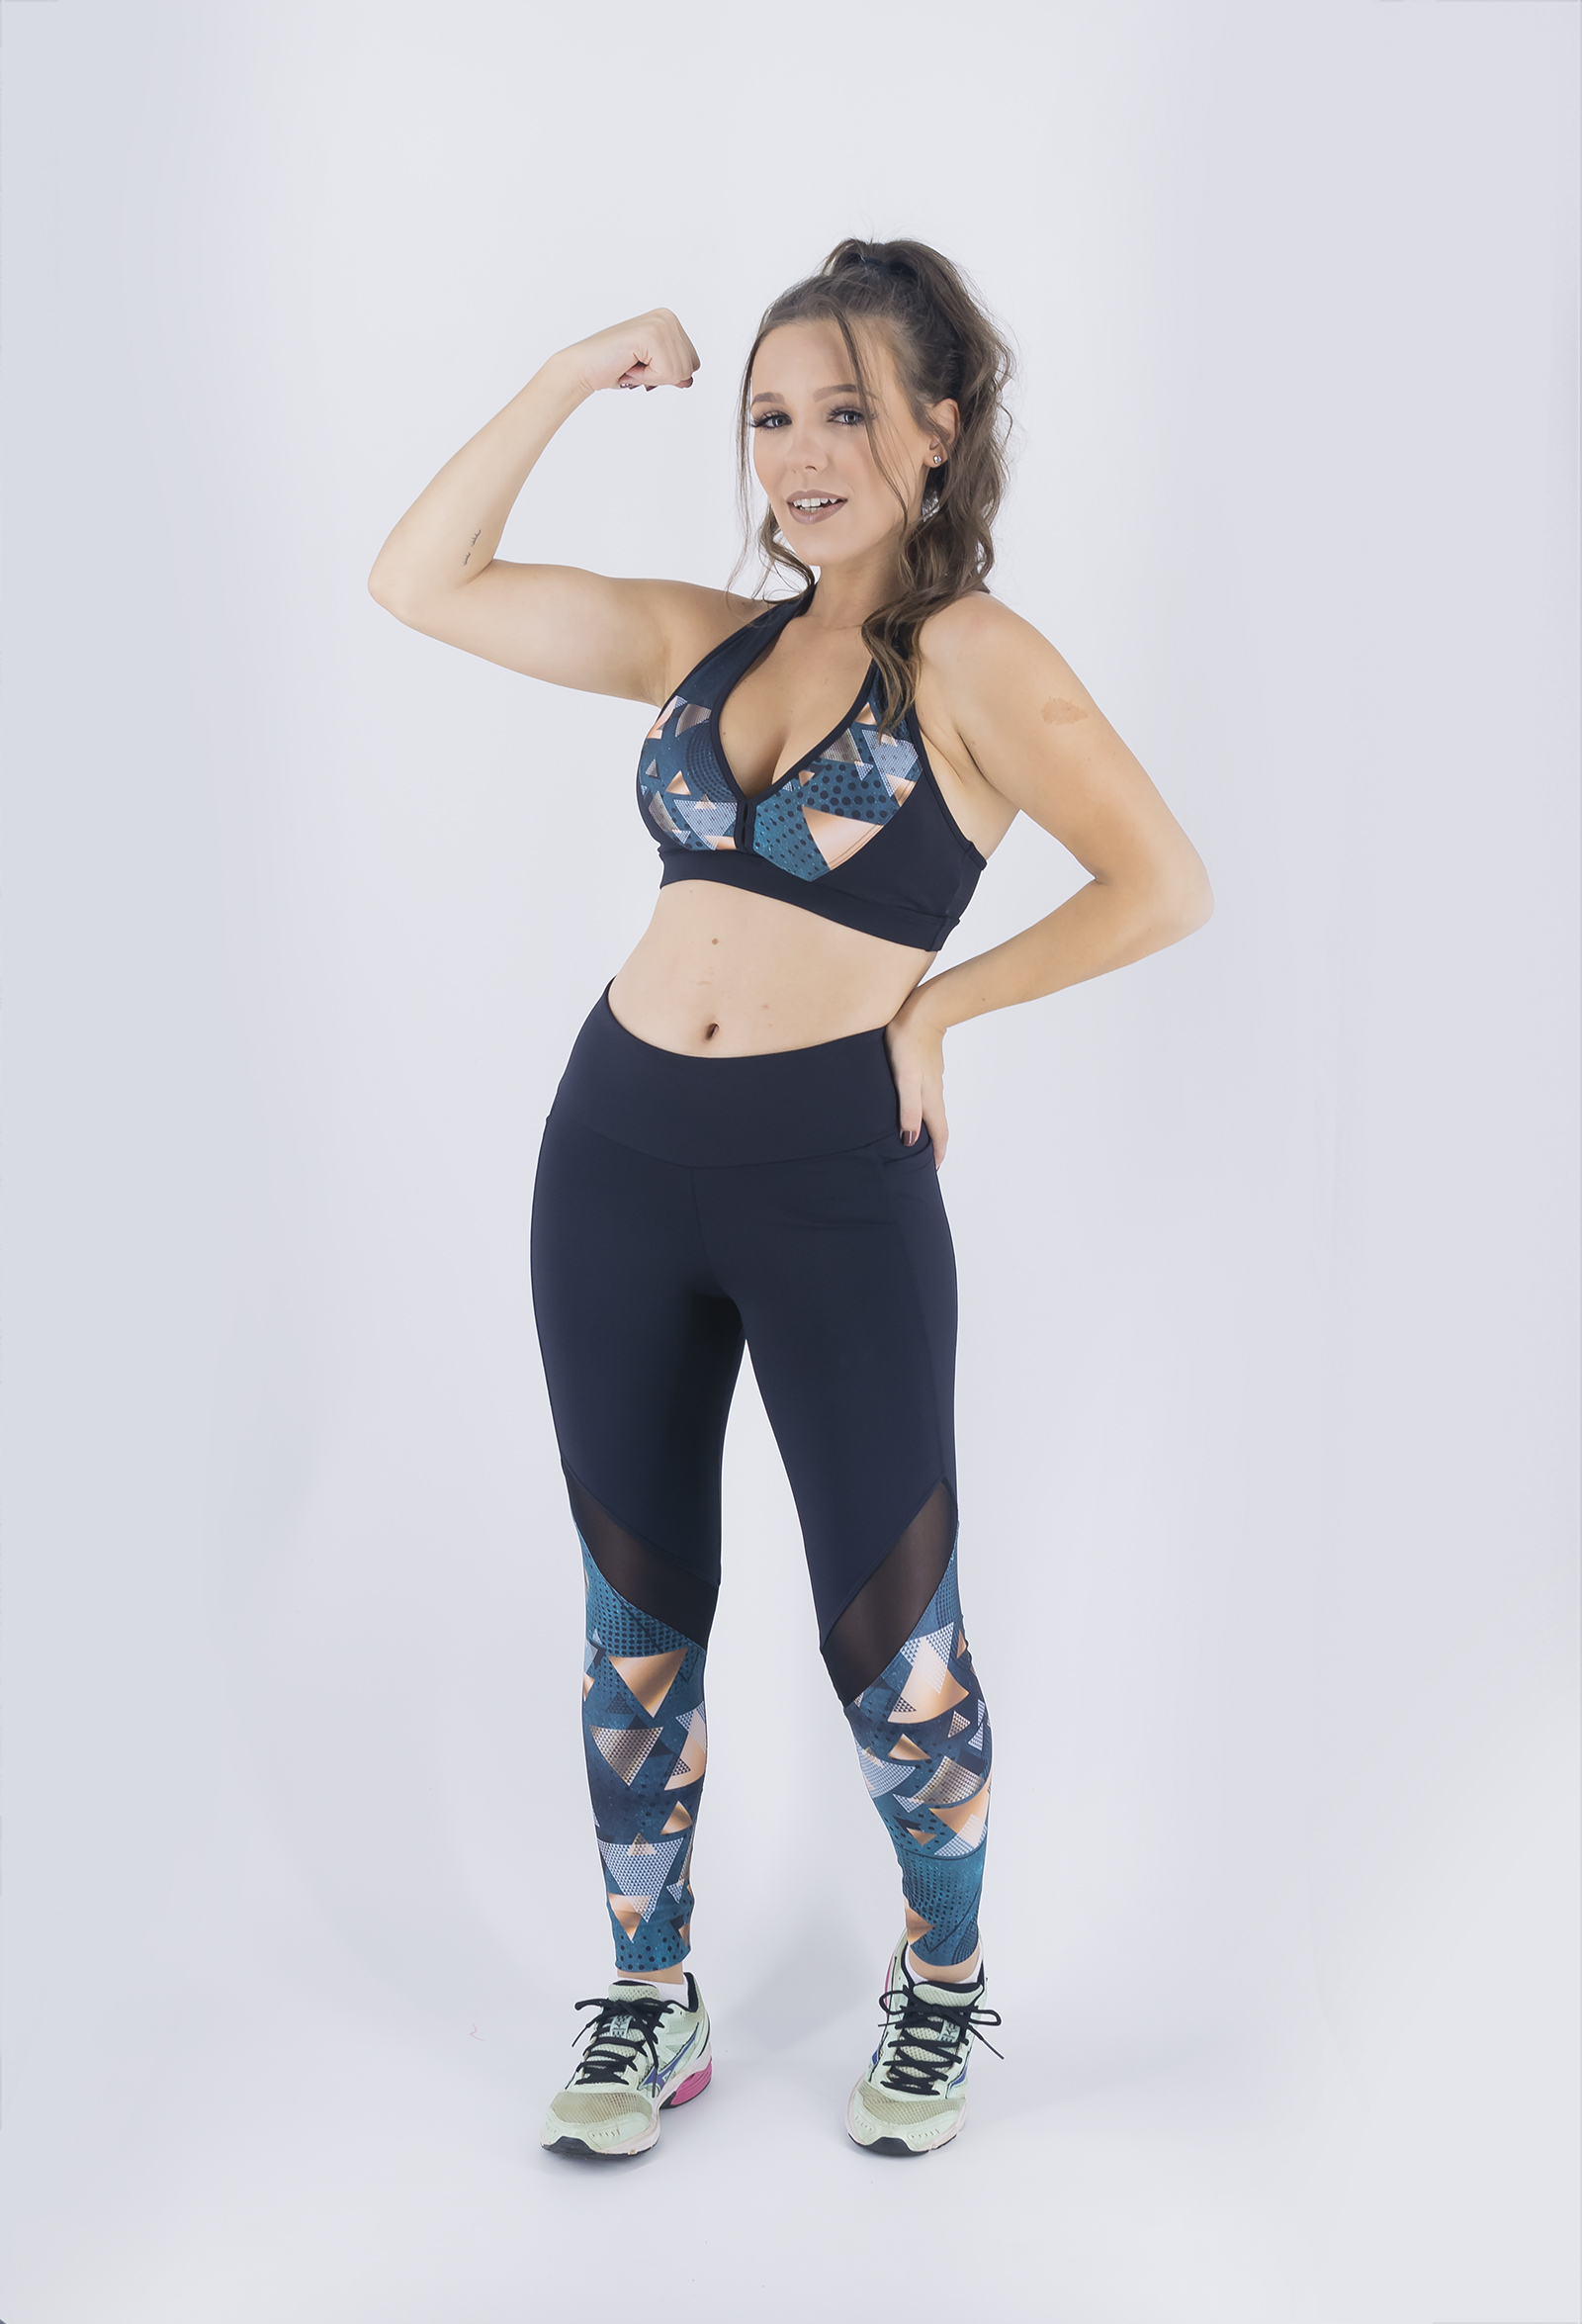 Top Set Místico, Coleção Just For You - NKT Fitwear Moda Fitness